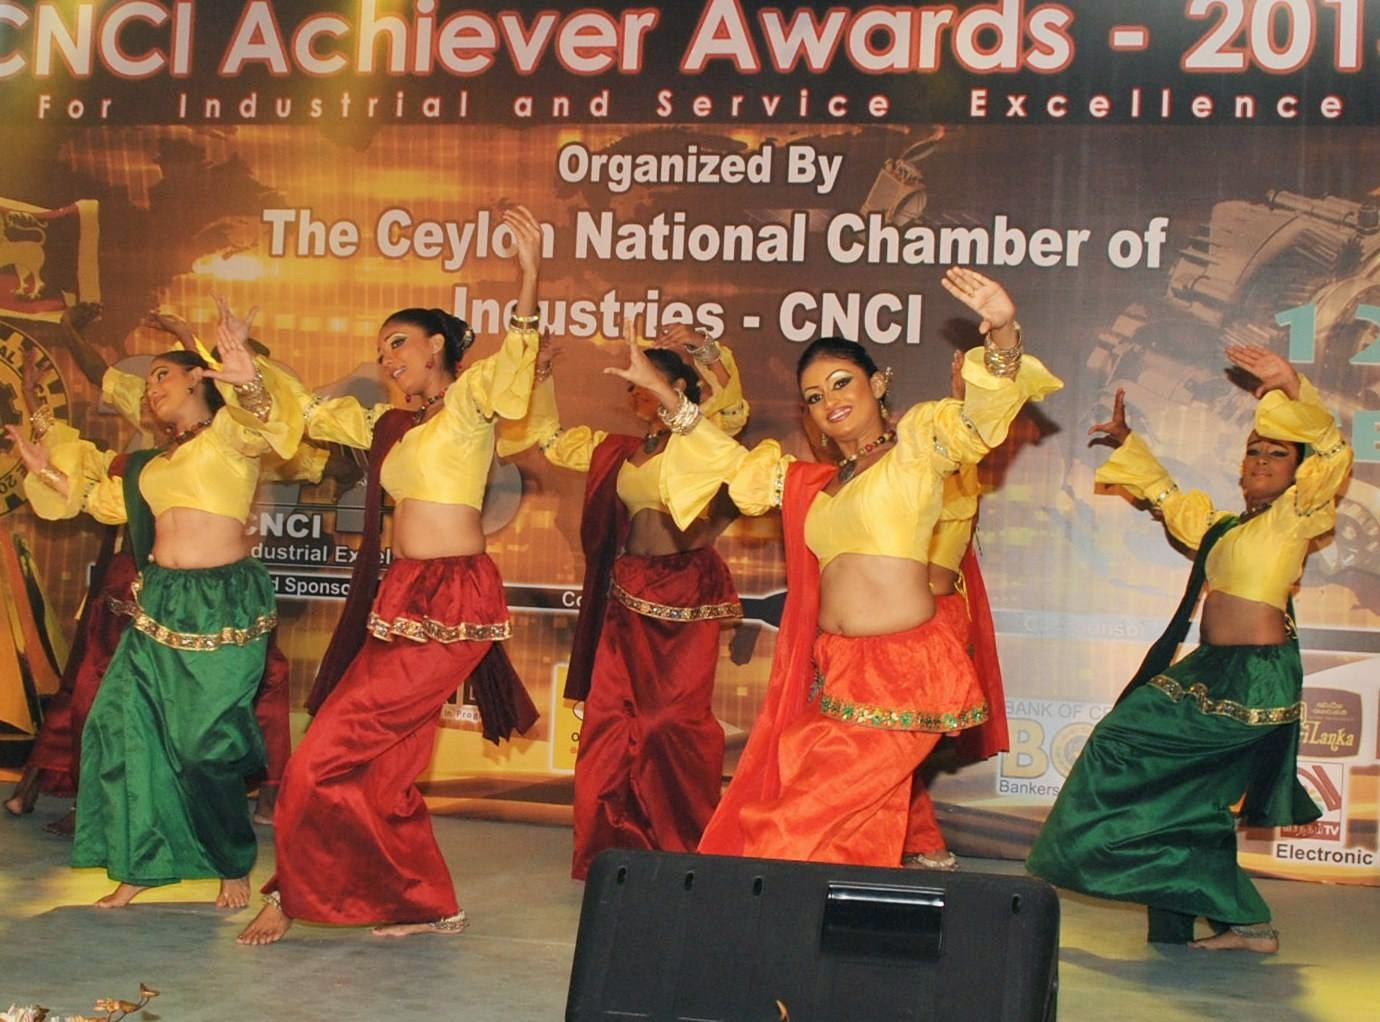 CNCI Achiever Awards 2013